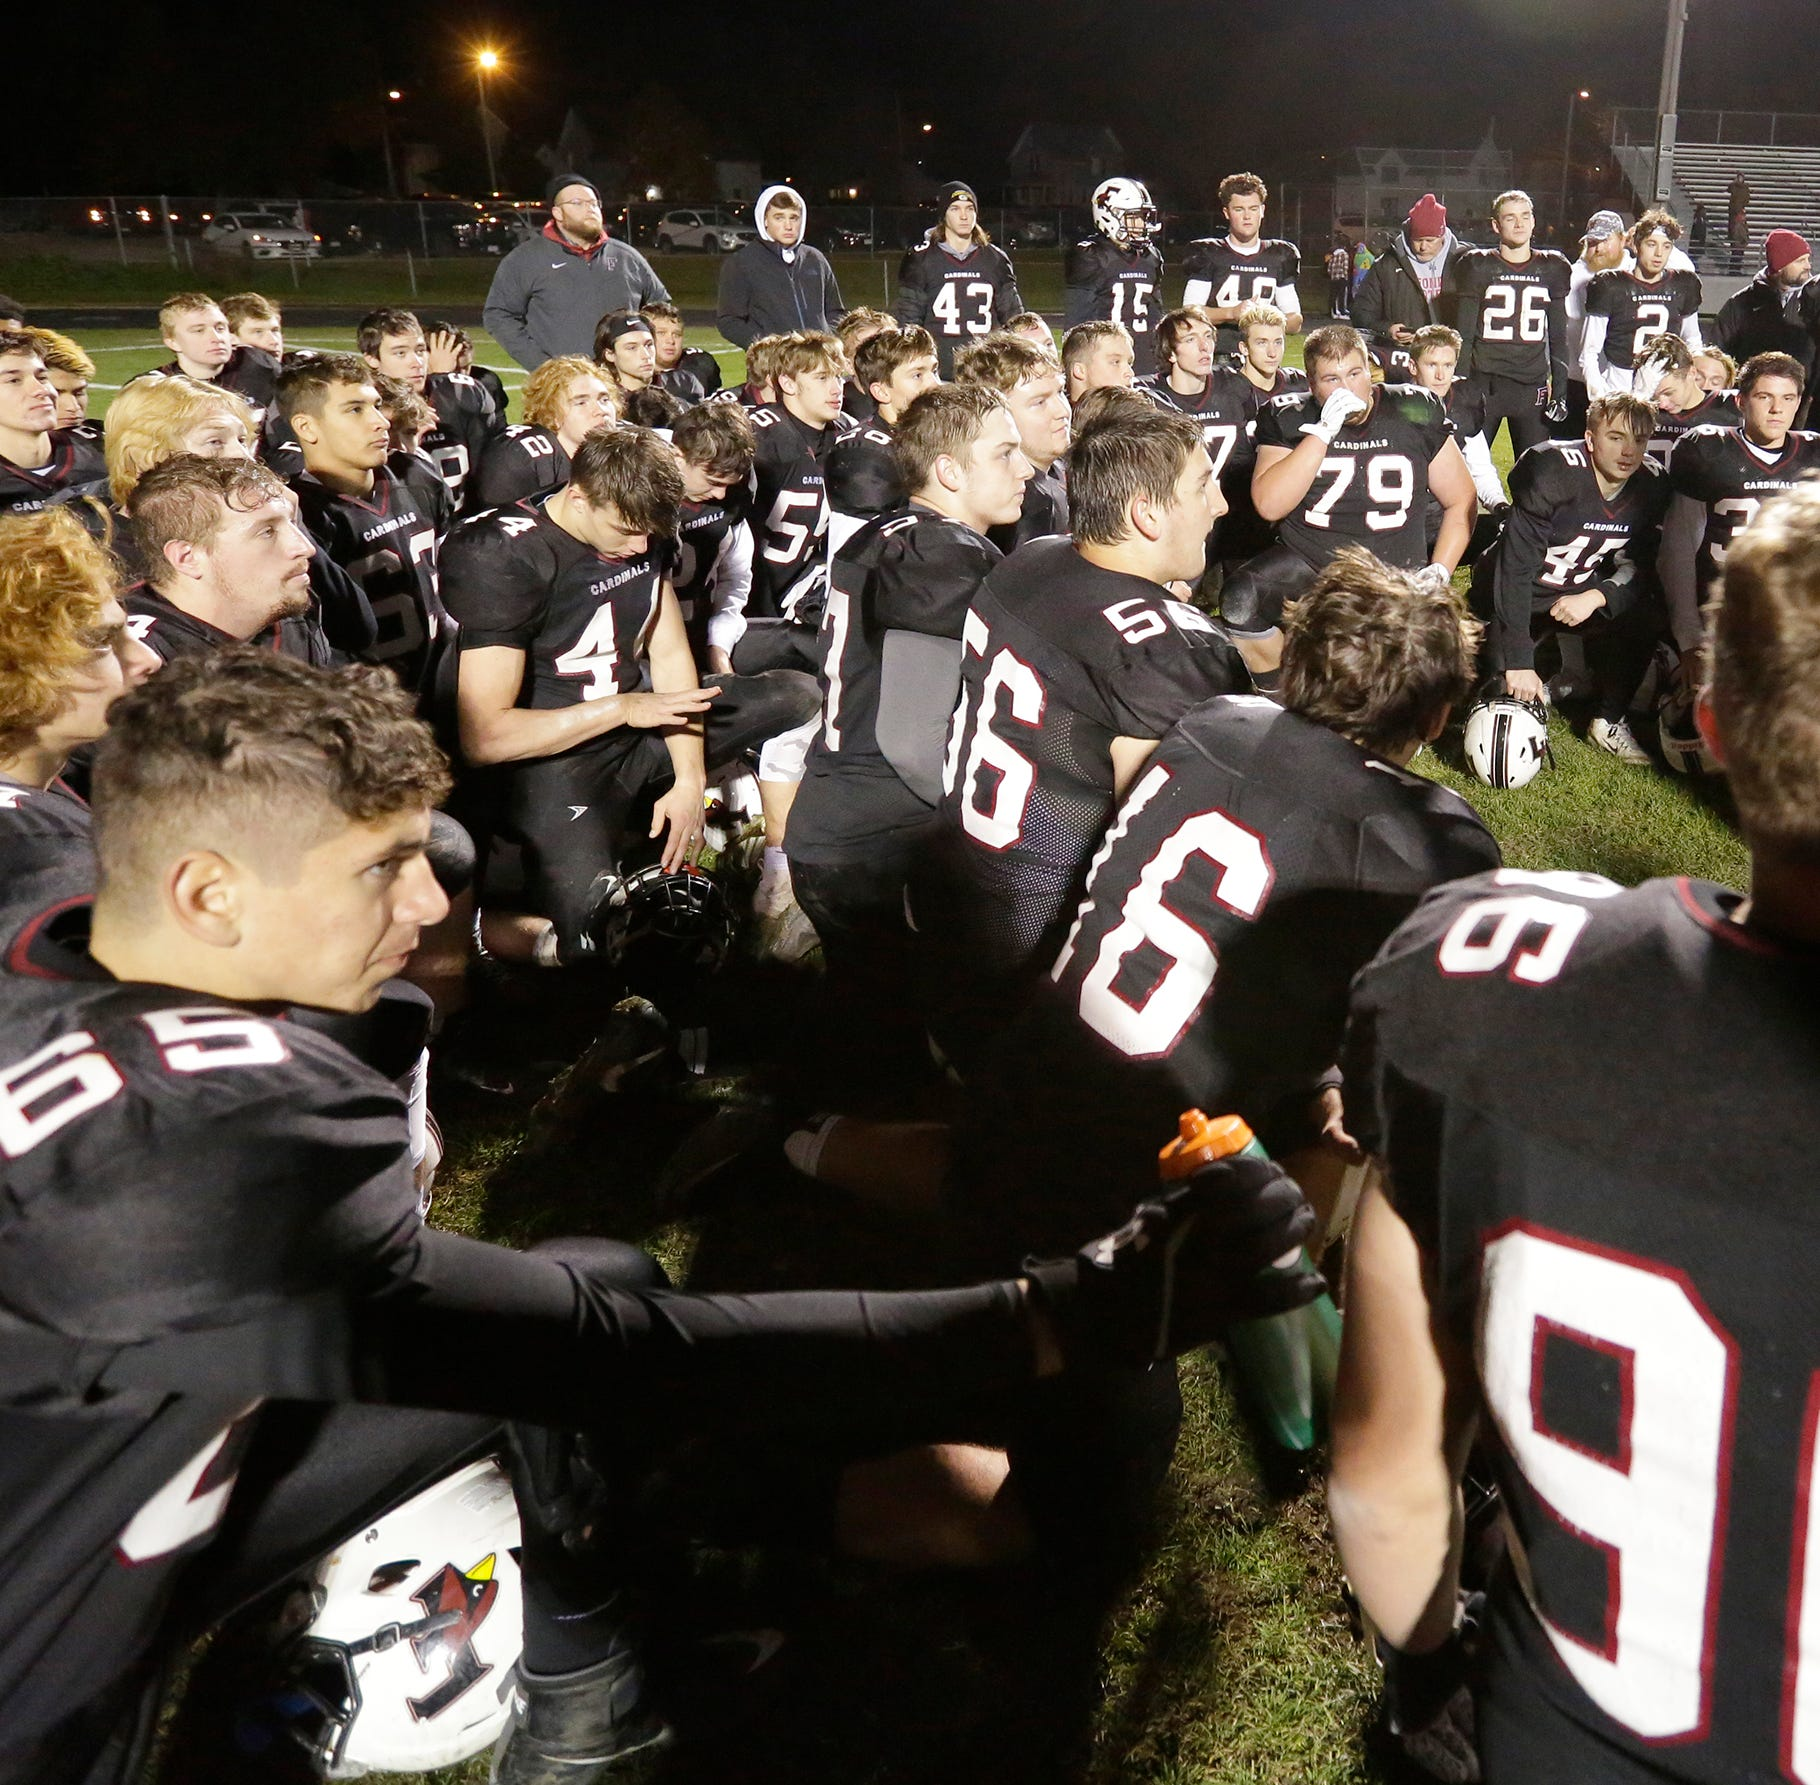 WIAA football: Top-ranked St. Mary's Springs, Fond du Lac move on in playoffs